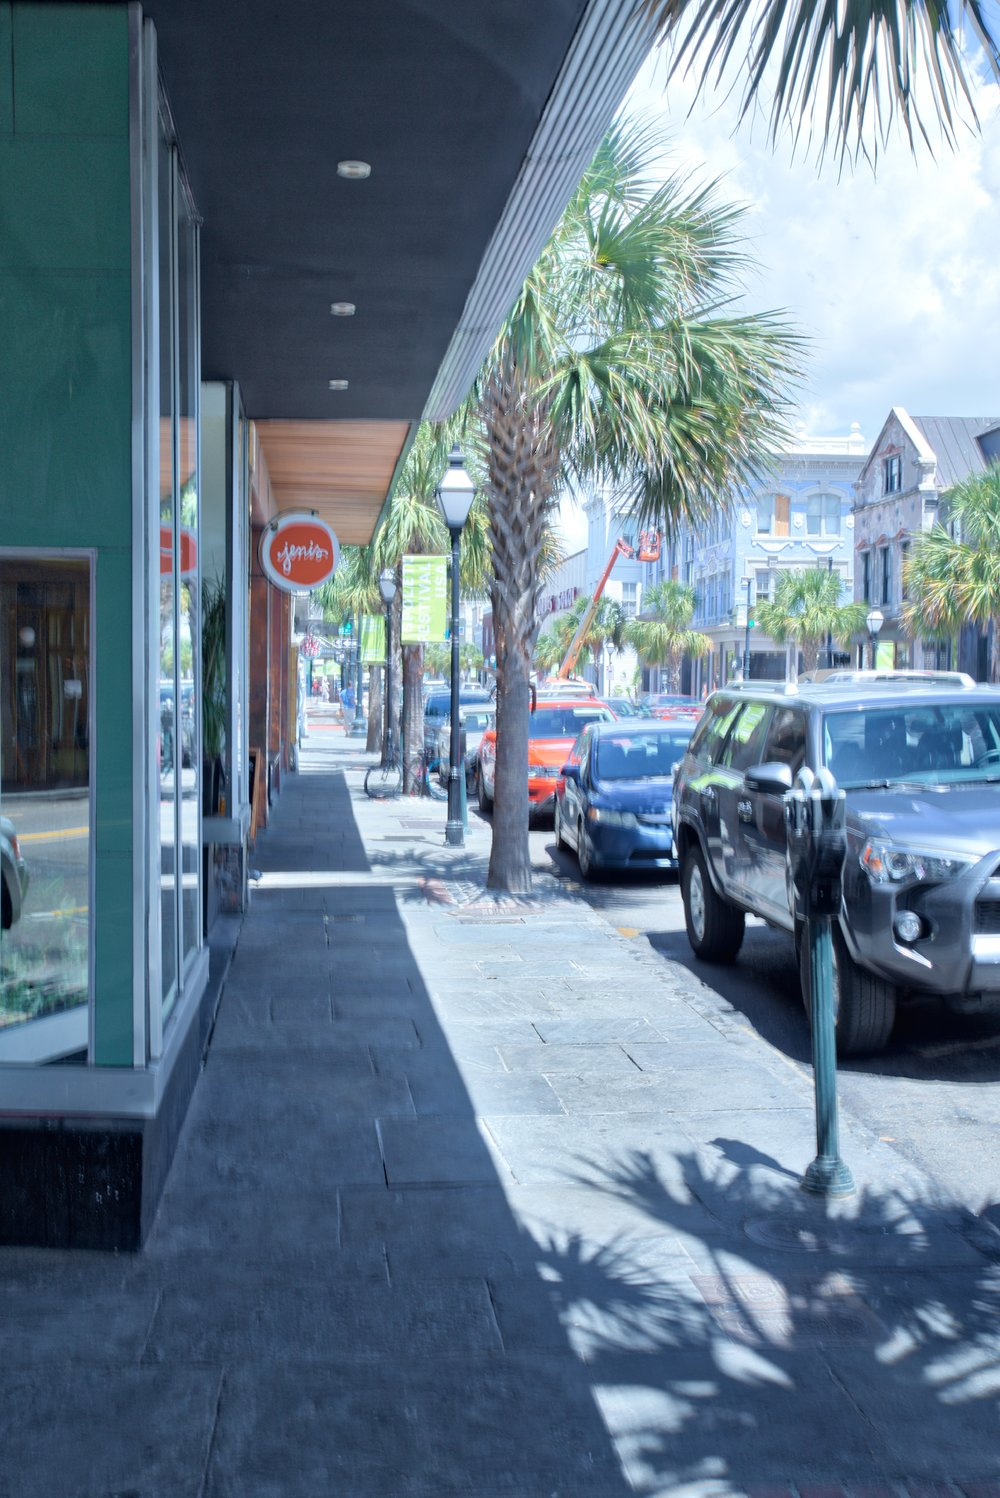 1Charleston SC King Street Shopping and Restaurants Nearby1.jpeg